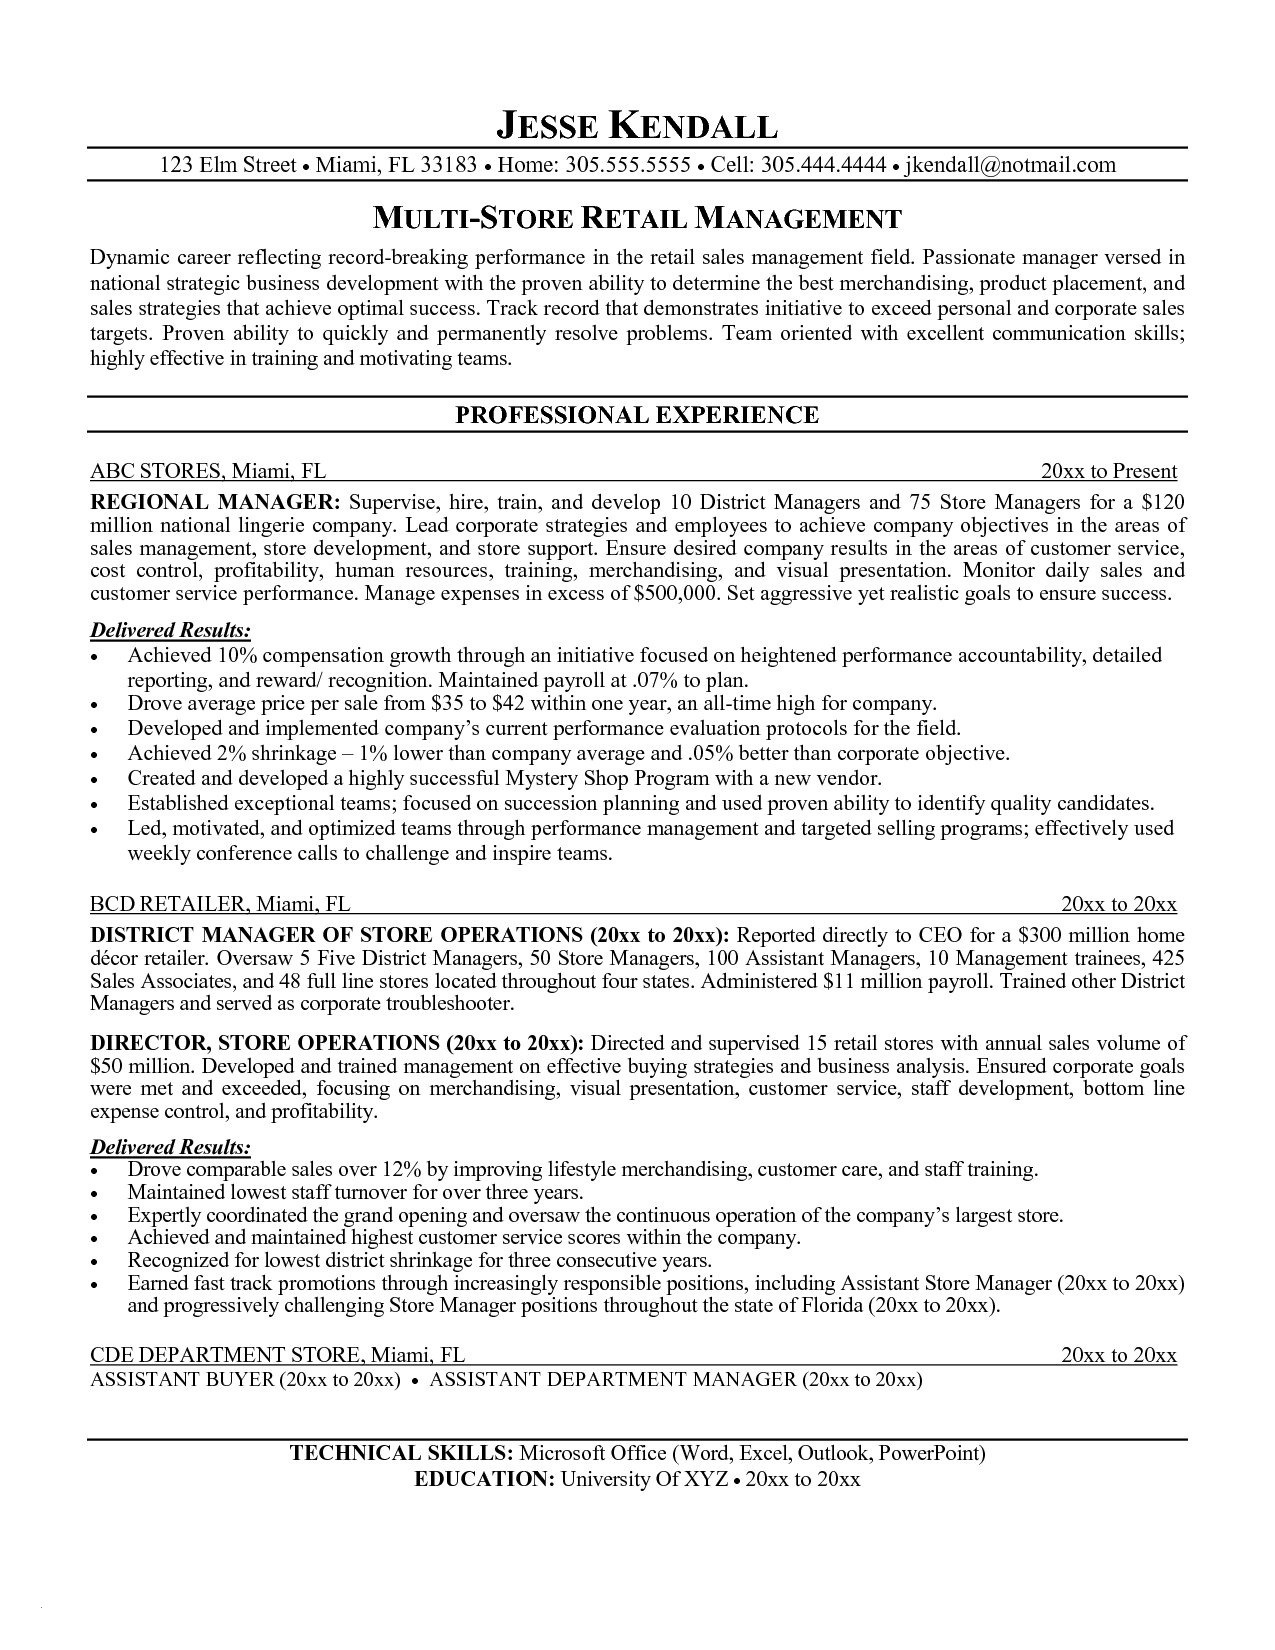 Retail Manager Resume Examples - General Manager Resume Sample Unique Sample Retail Manager Resume